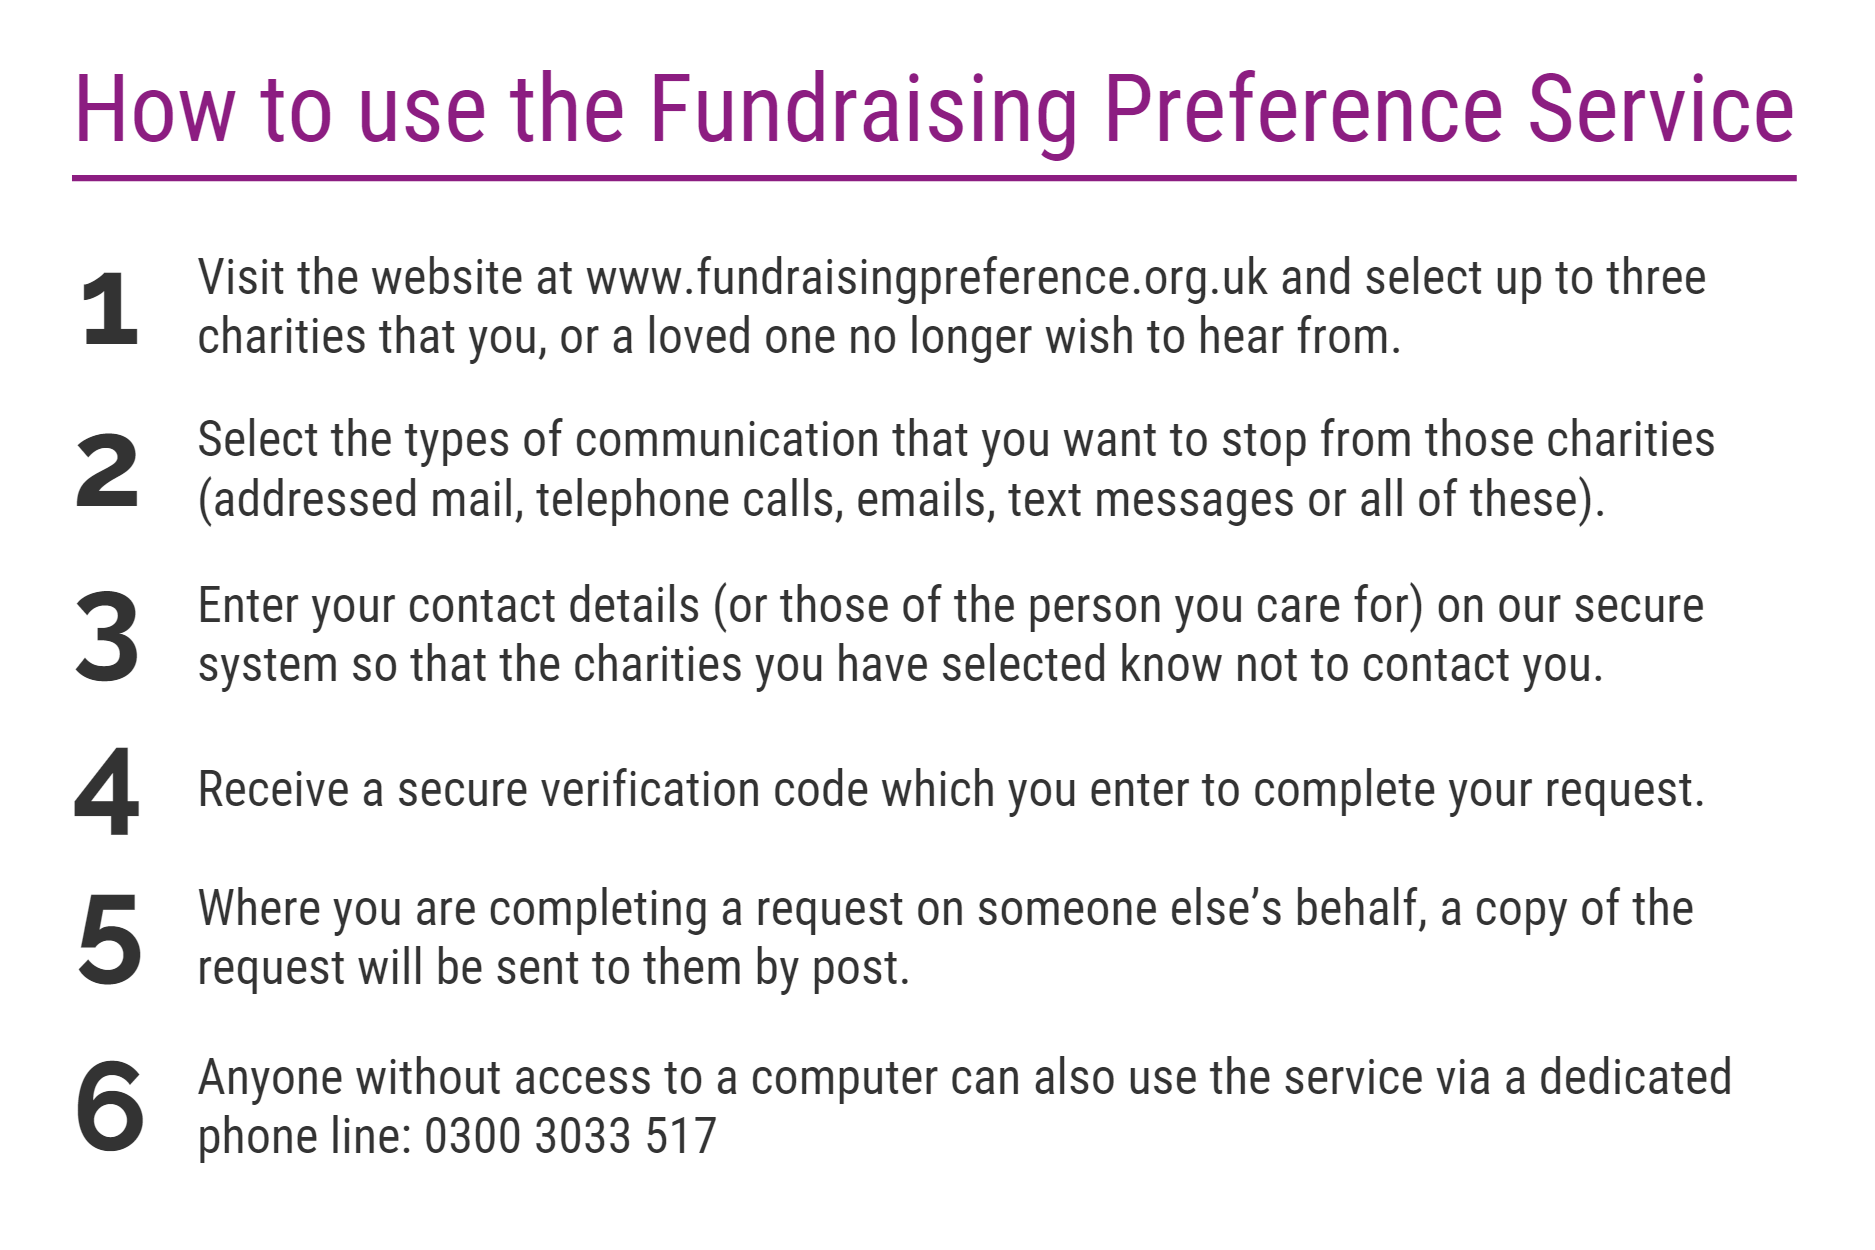 Stop unwanted charity communications using this free service